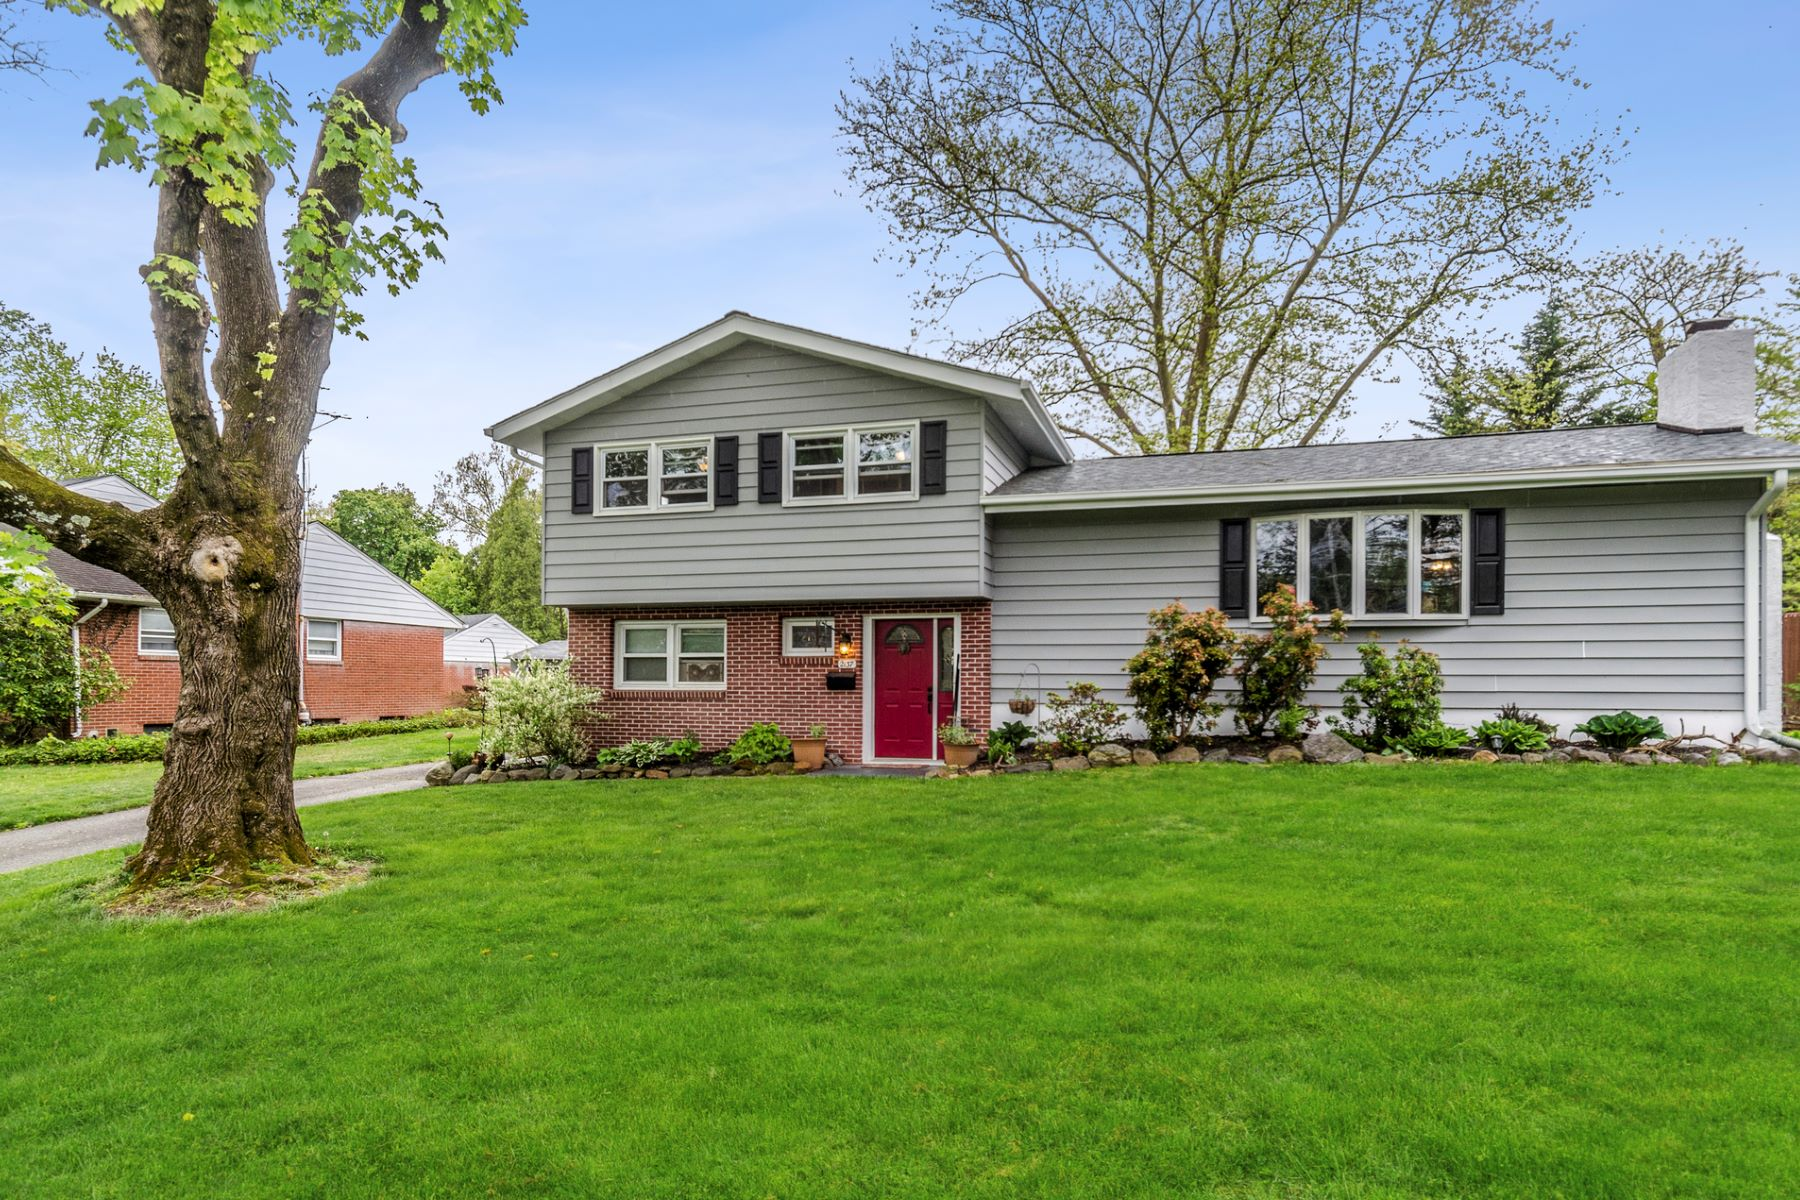 Single Family Homes のために 売買 アット Convenient and Spacious 2137 Pennington Road, Ewing, ニュージャージー 08638 アメリカ